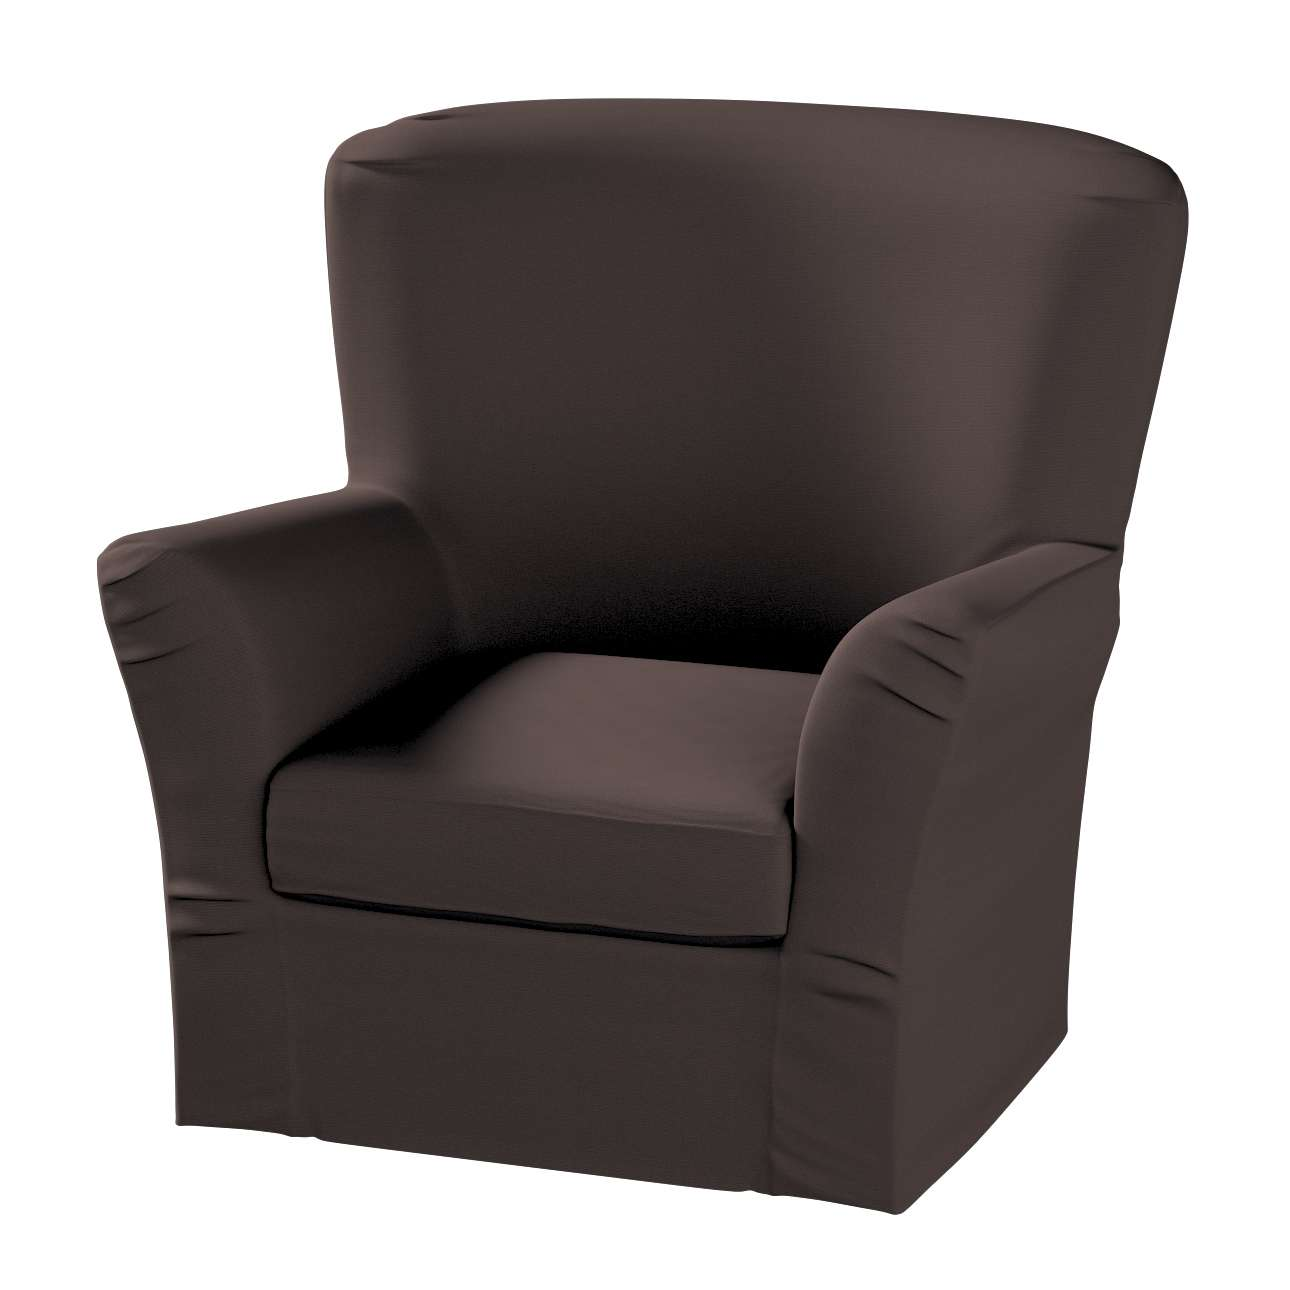 Tomelilla armchair  Tomelilla armchair in collection Panama Cotton, fabric: 702-03